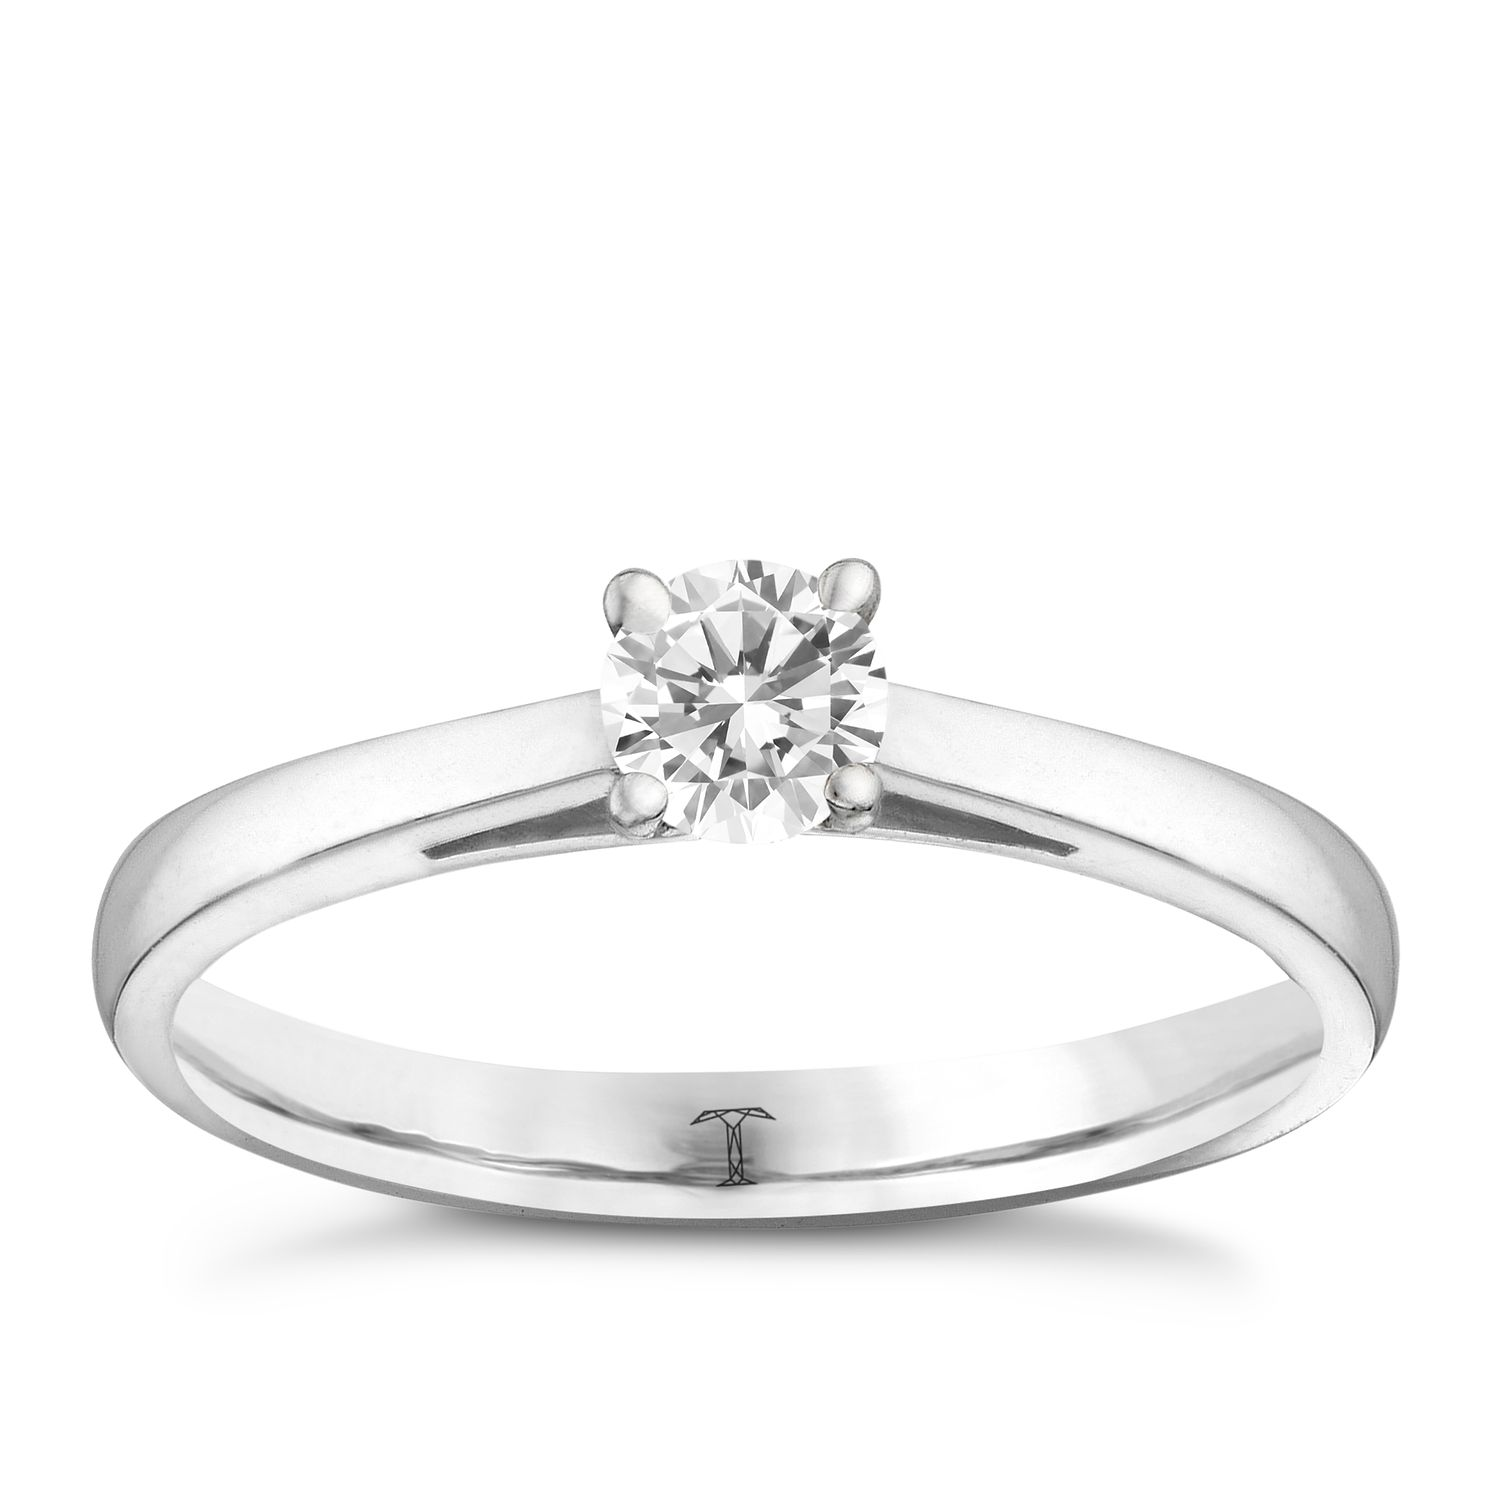 Tolkowsky 18ct White Gold 0.25ct I-I1 Diamond Ring - Product number 8660042